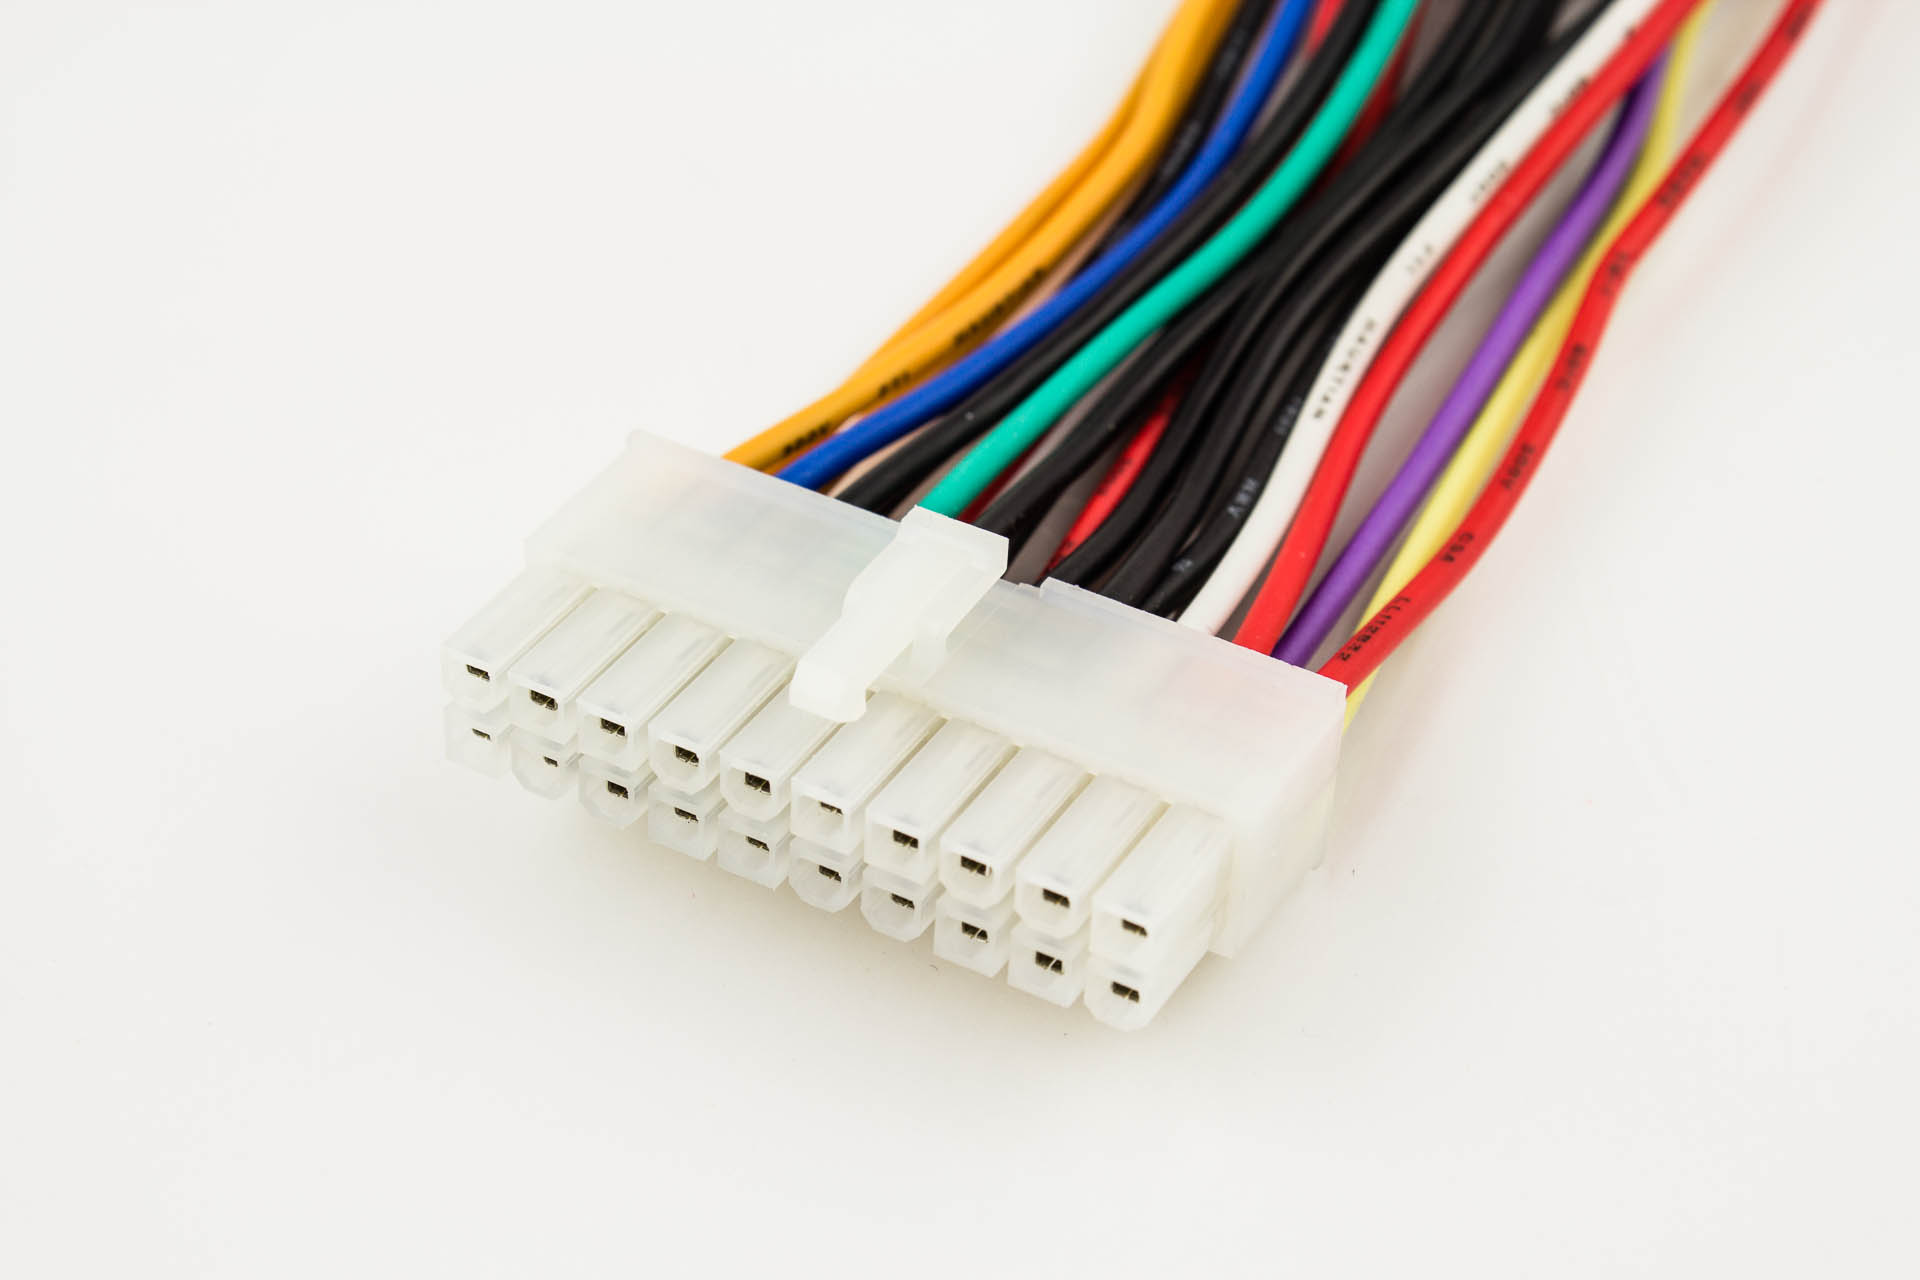 atx power cable 24p male to 20p female